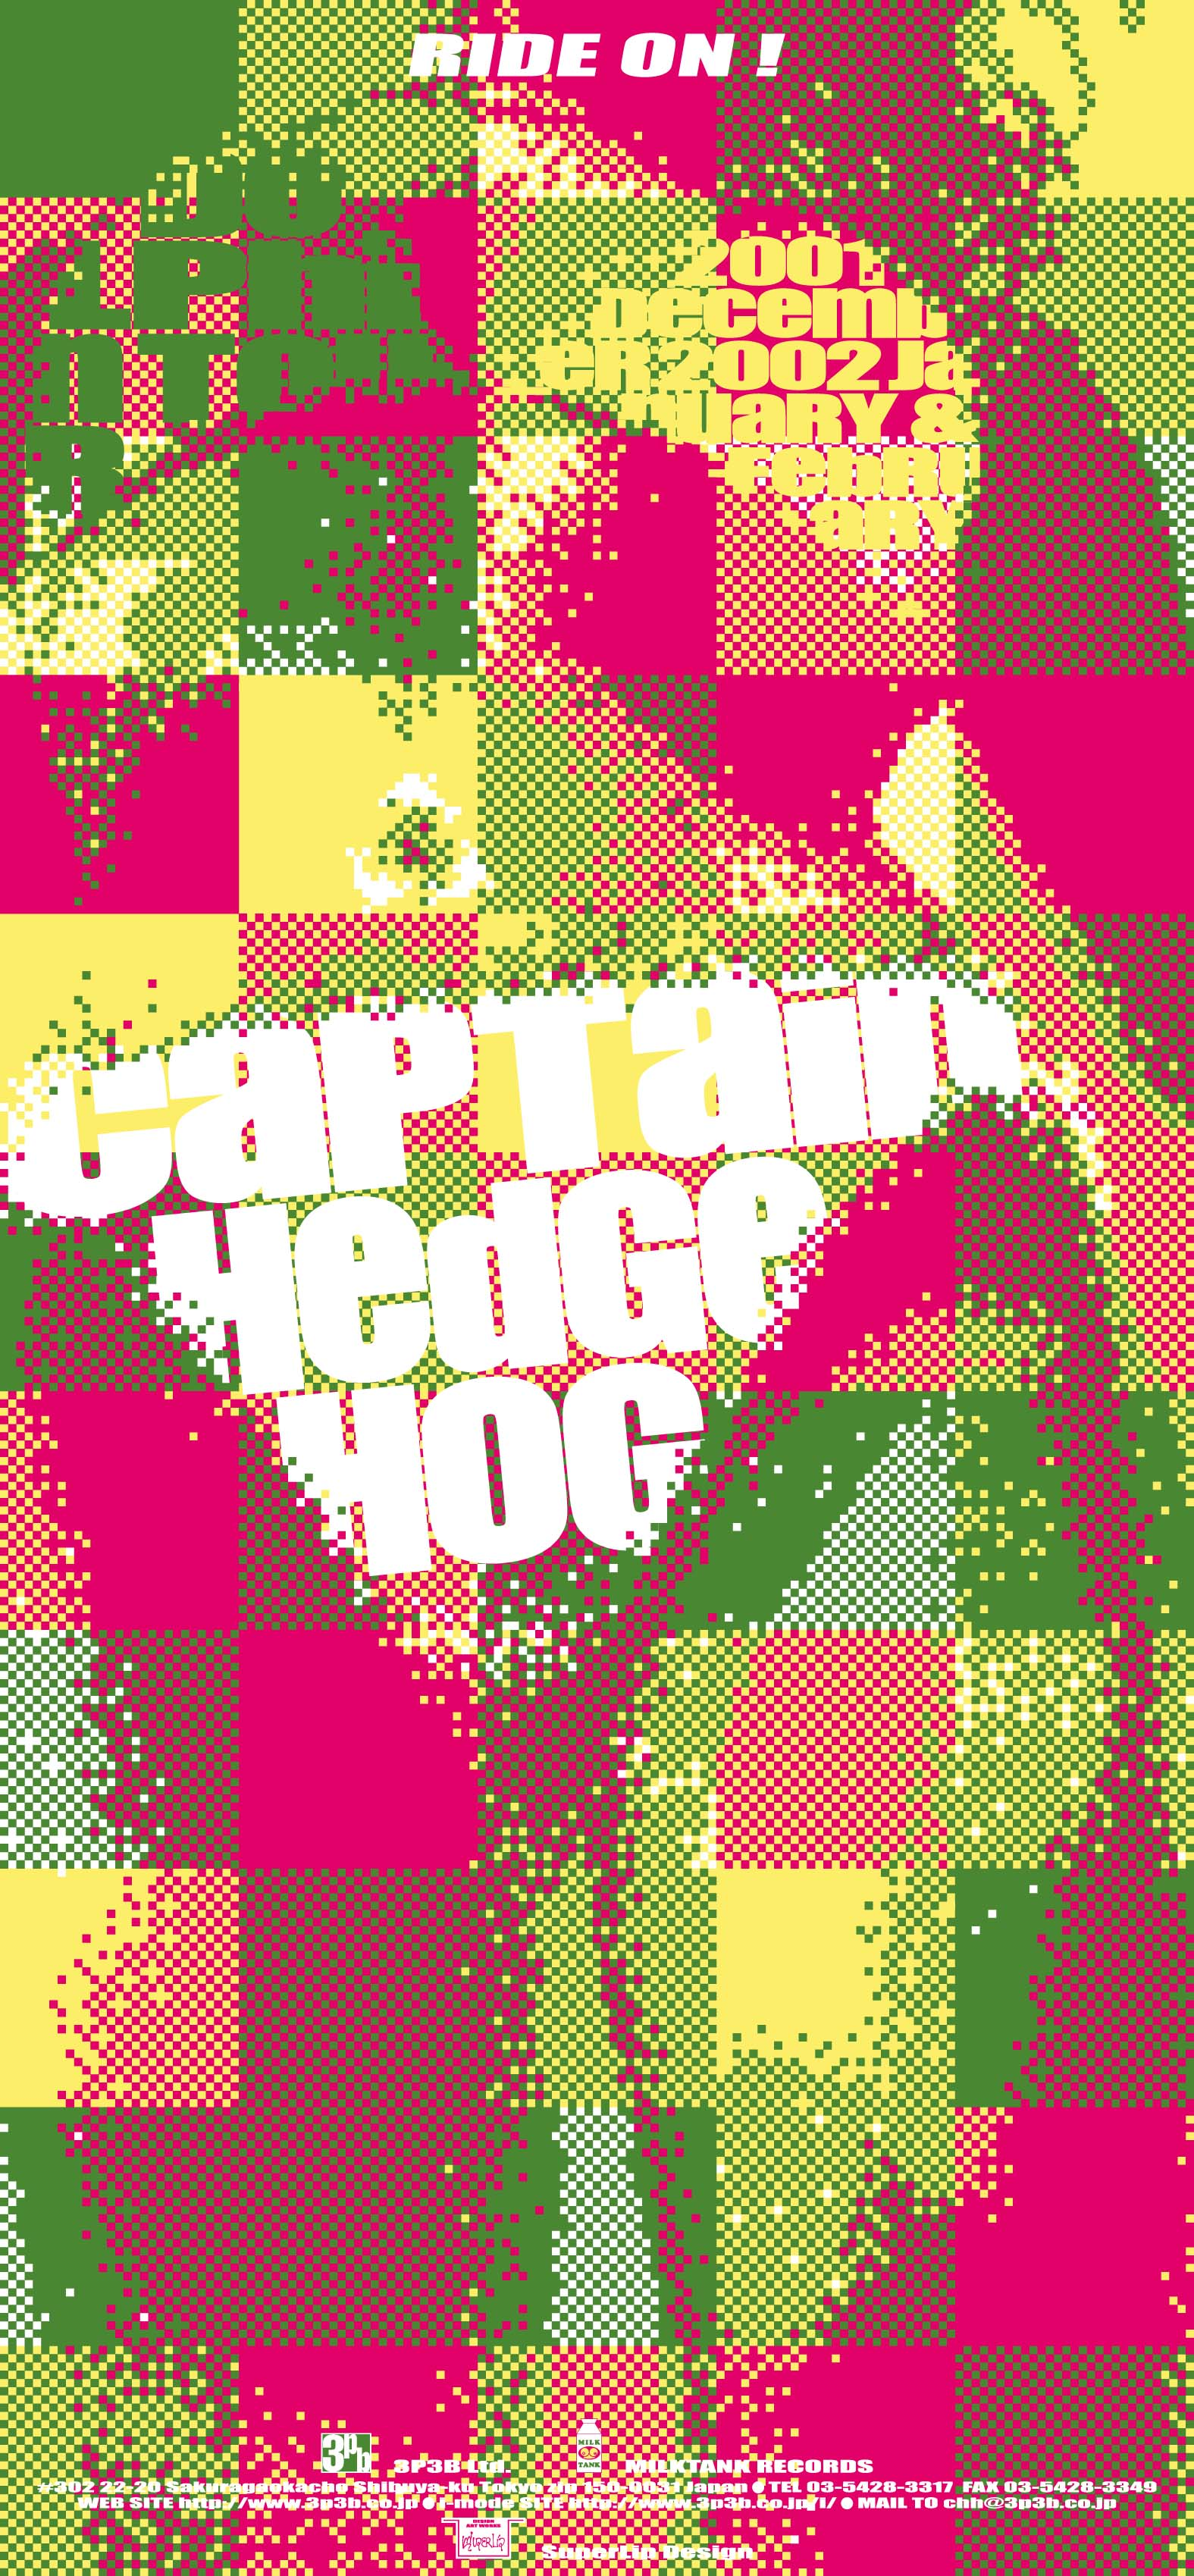 CAPTAIN HEDGE HOG / RIDE ON!